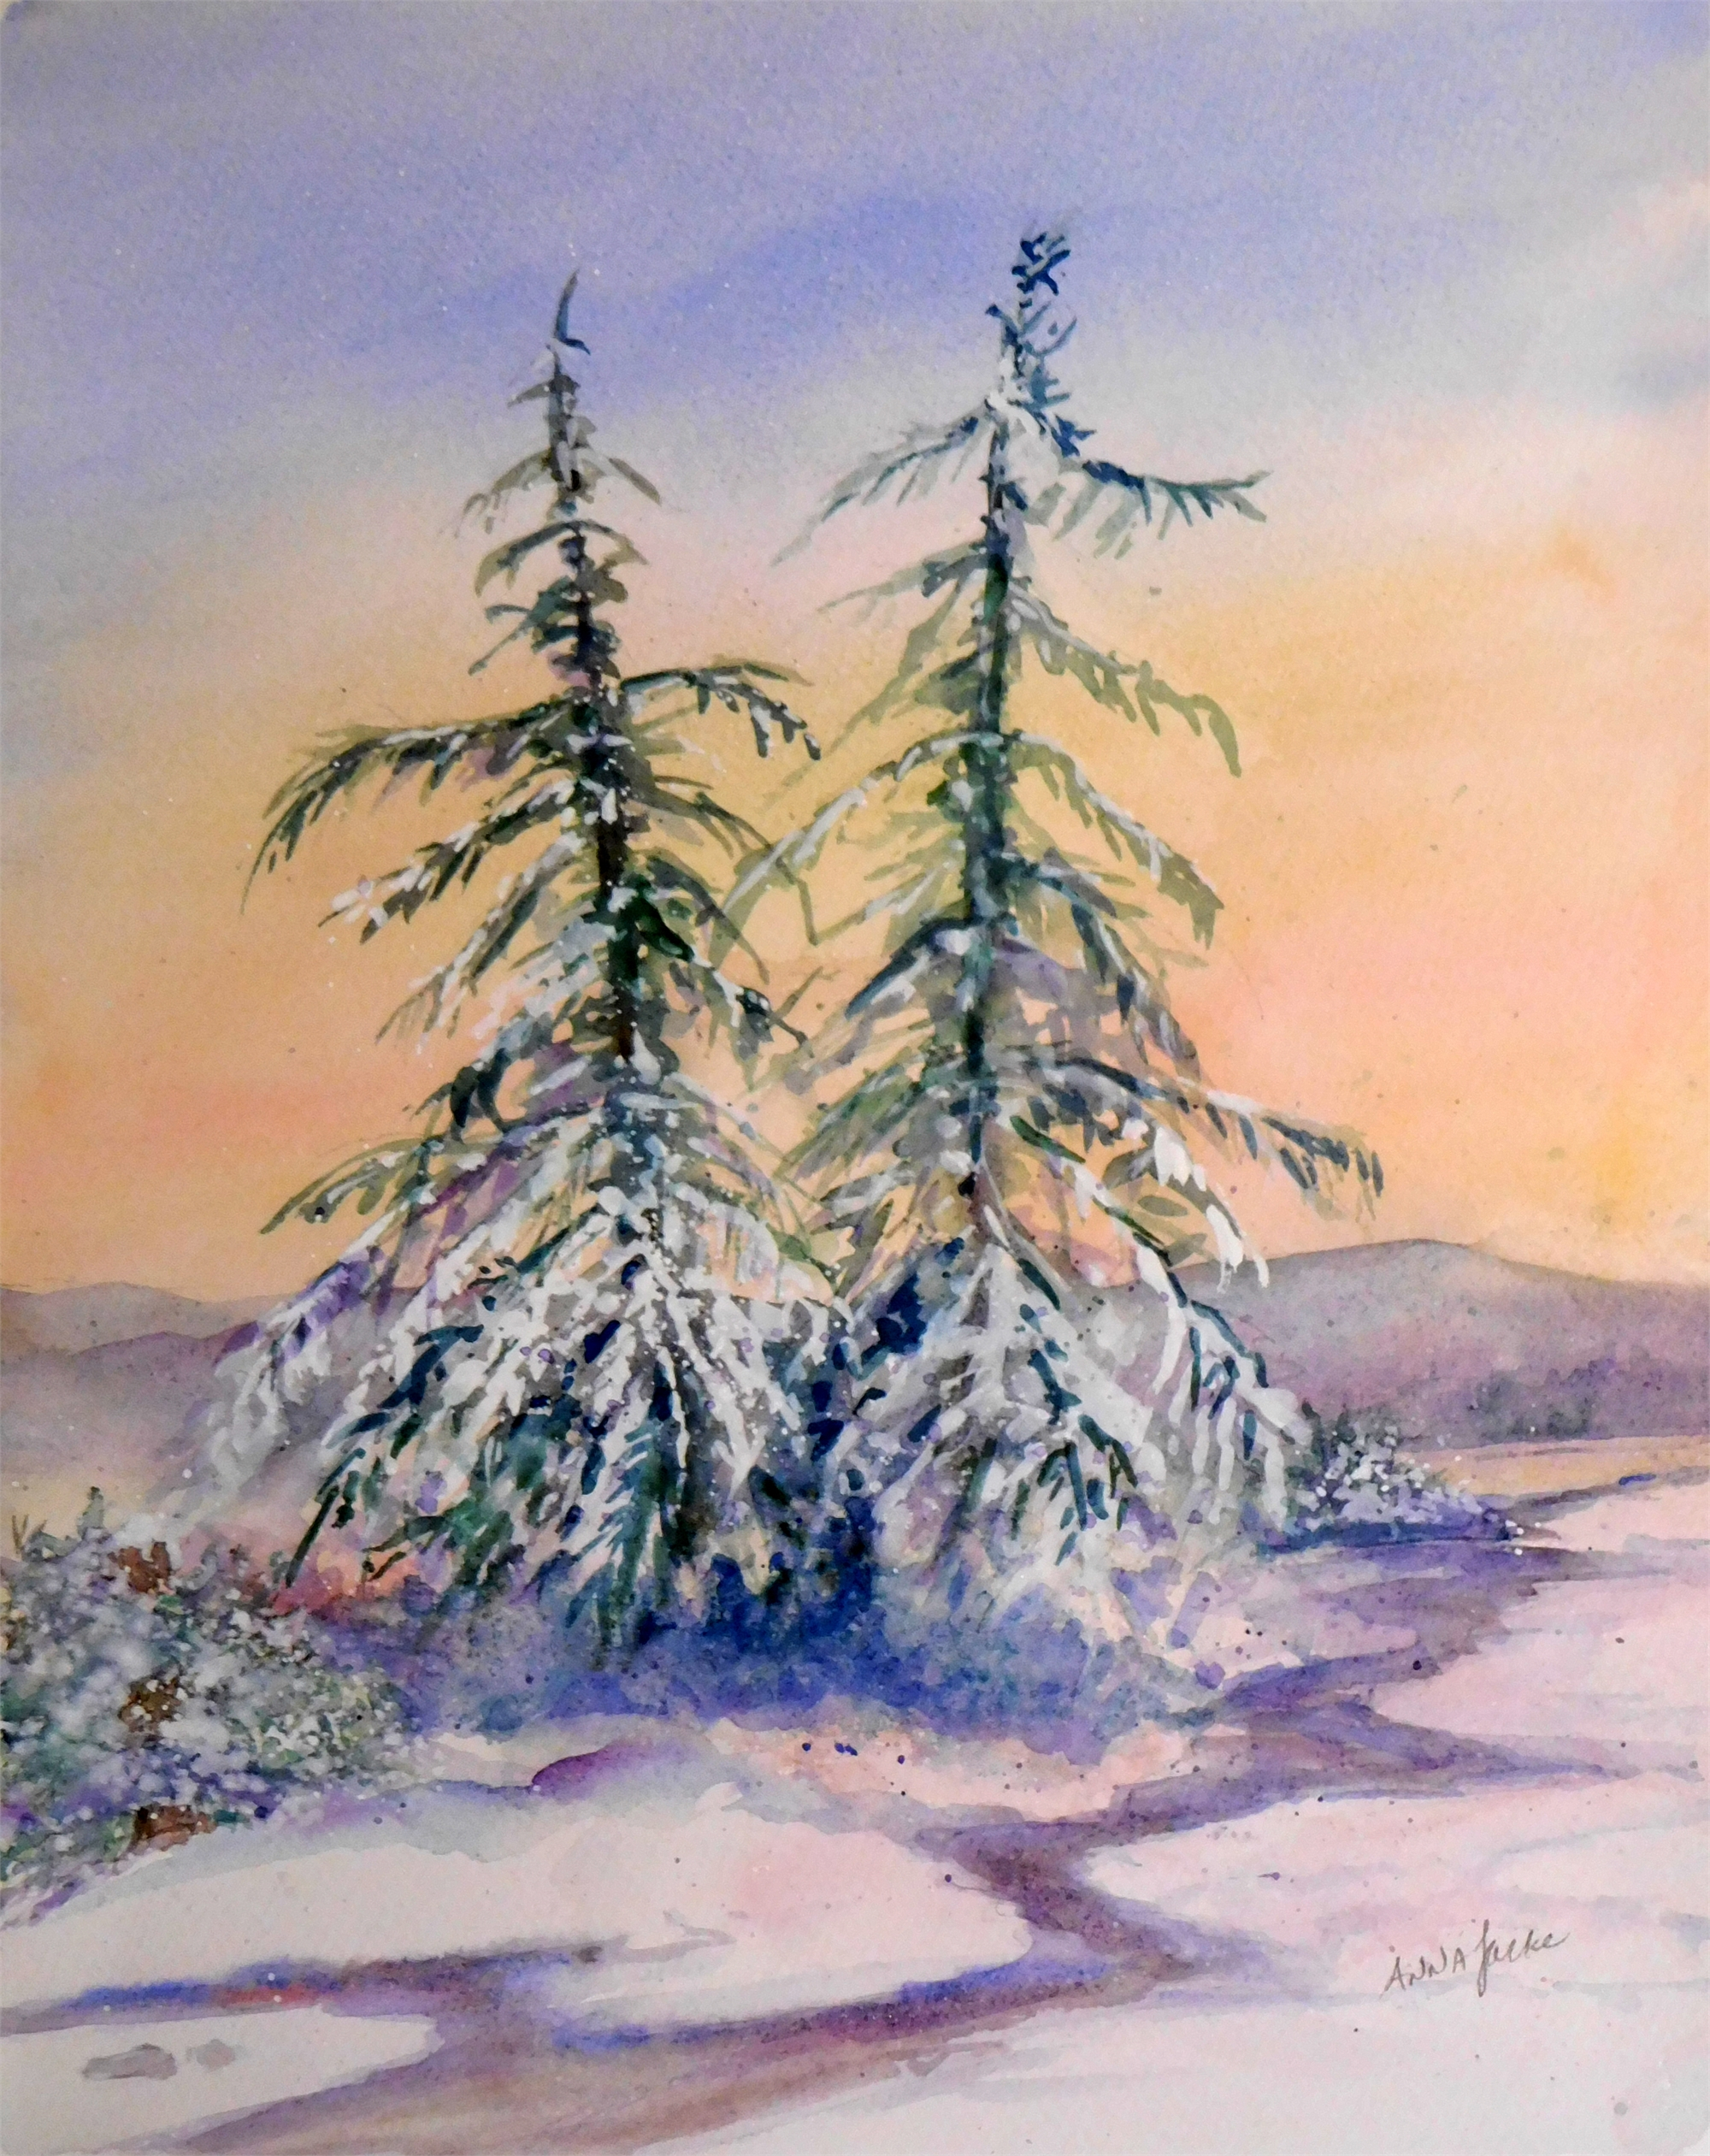 Frosted Dawn by Anna Jacke (McMinnville, OR)